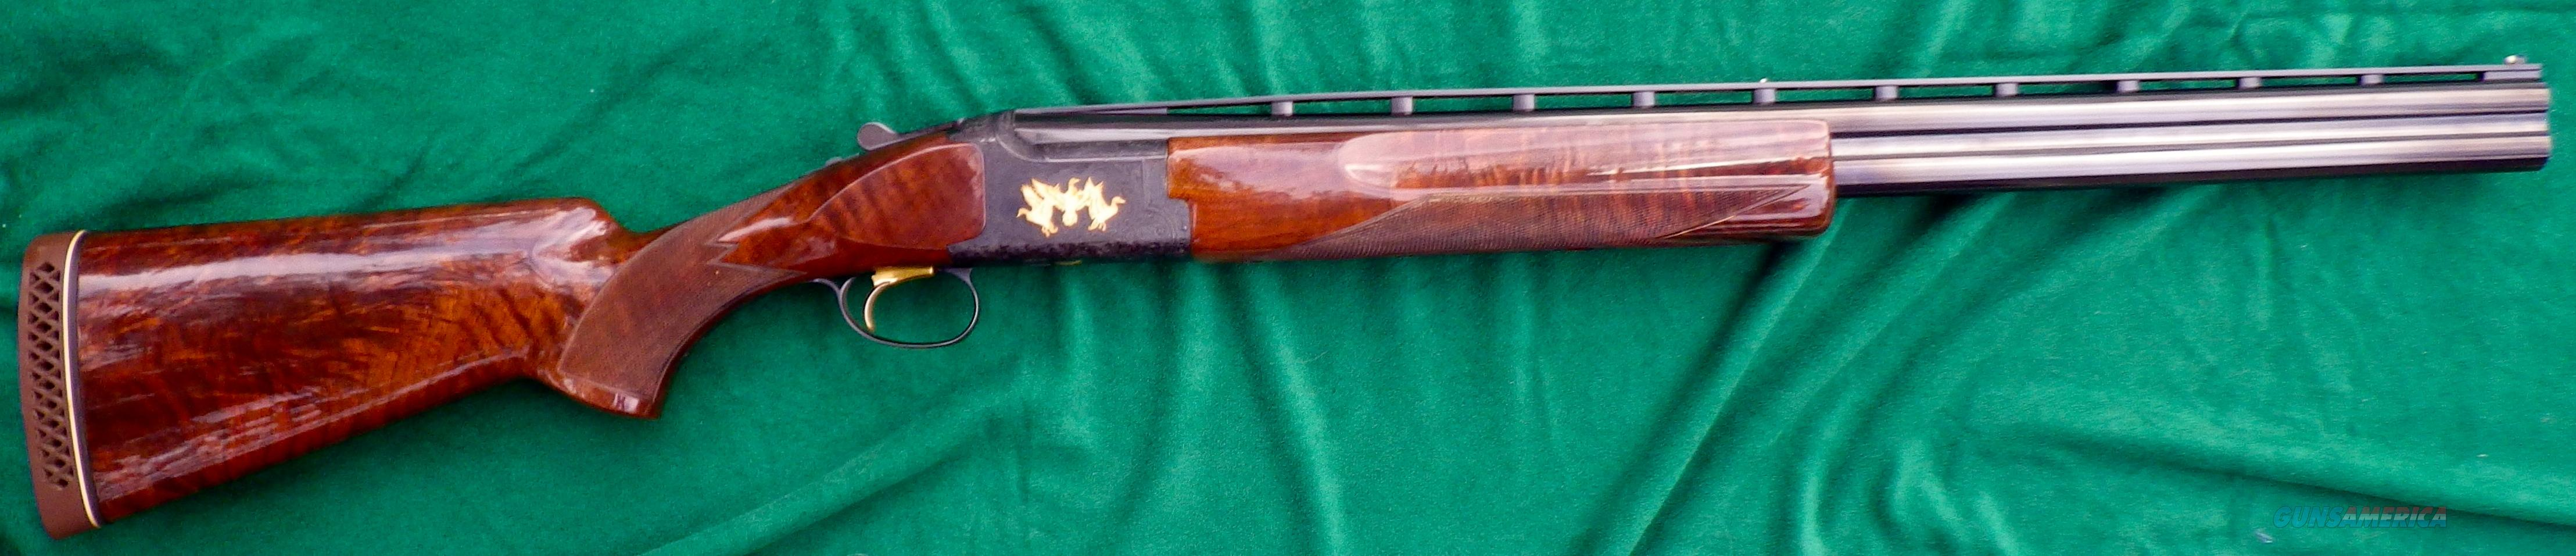 Browning Citori Grade VI 4-barrel skeet set, 26-inch, case, 1989, 99%+  Guns > Shotguns > Browning Shotguns > Over Unders > Citori > Trap/Skeet